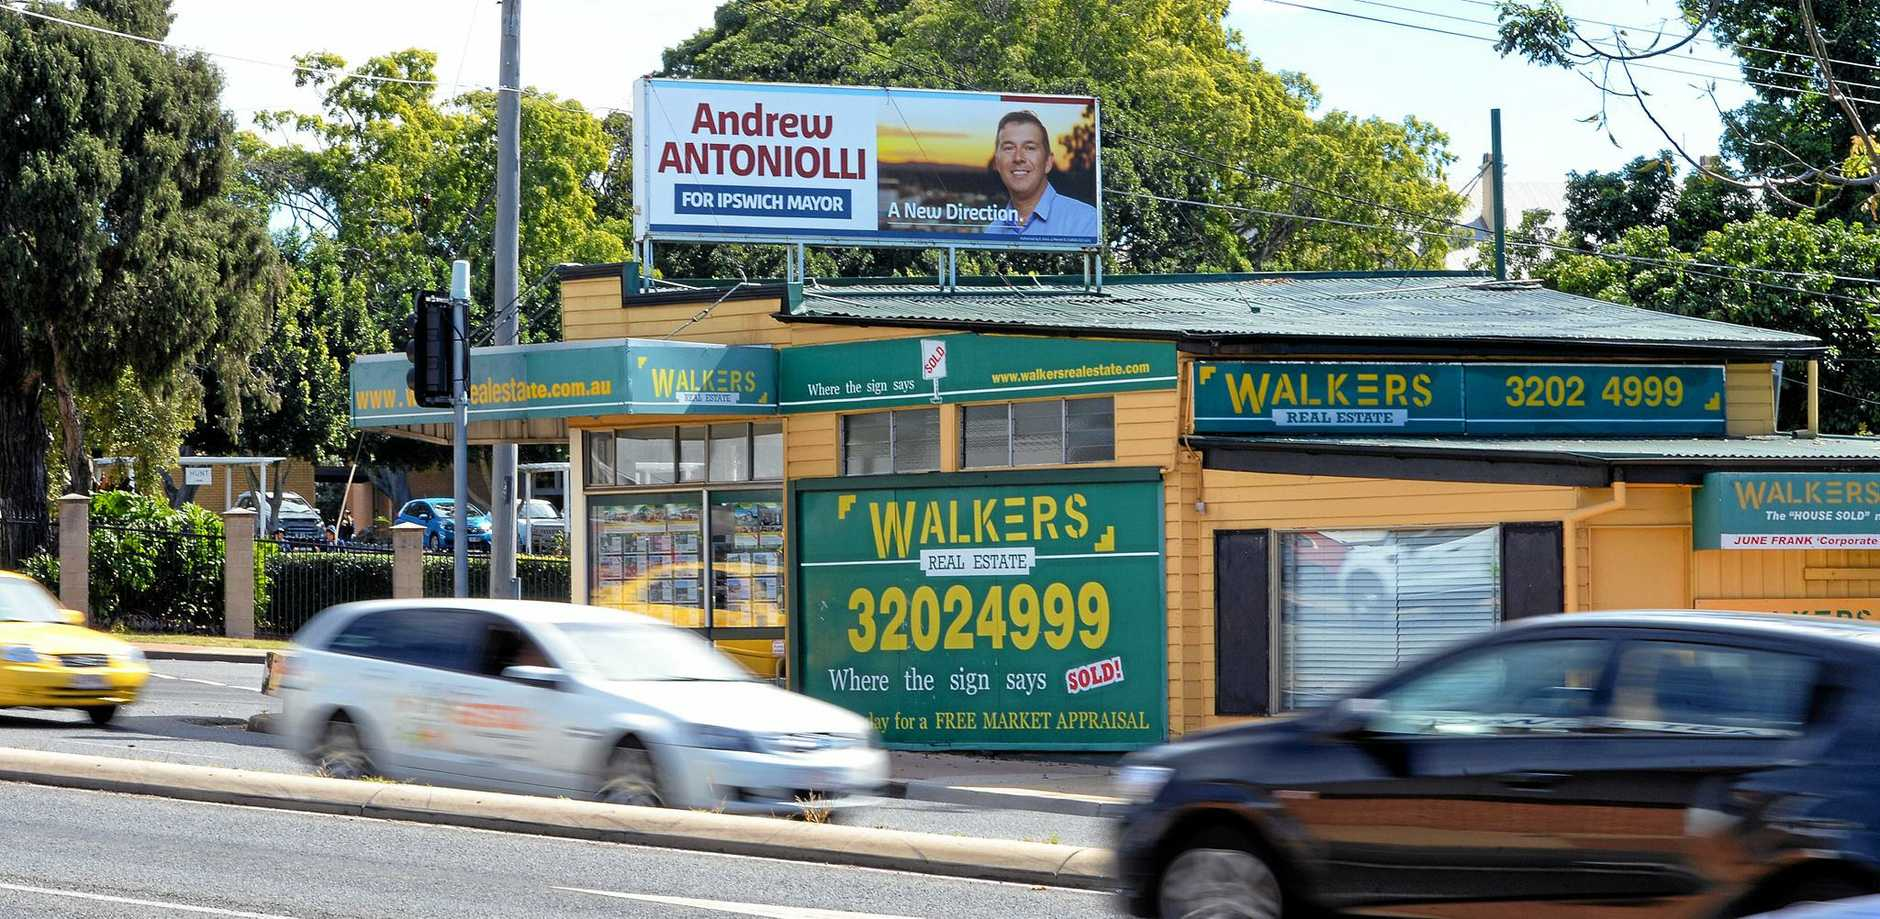 Andrew Antoniolli sign on Walkers Real Estate at the Ipswich Fiveways.